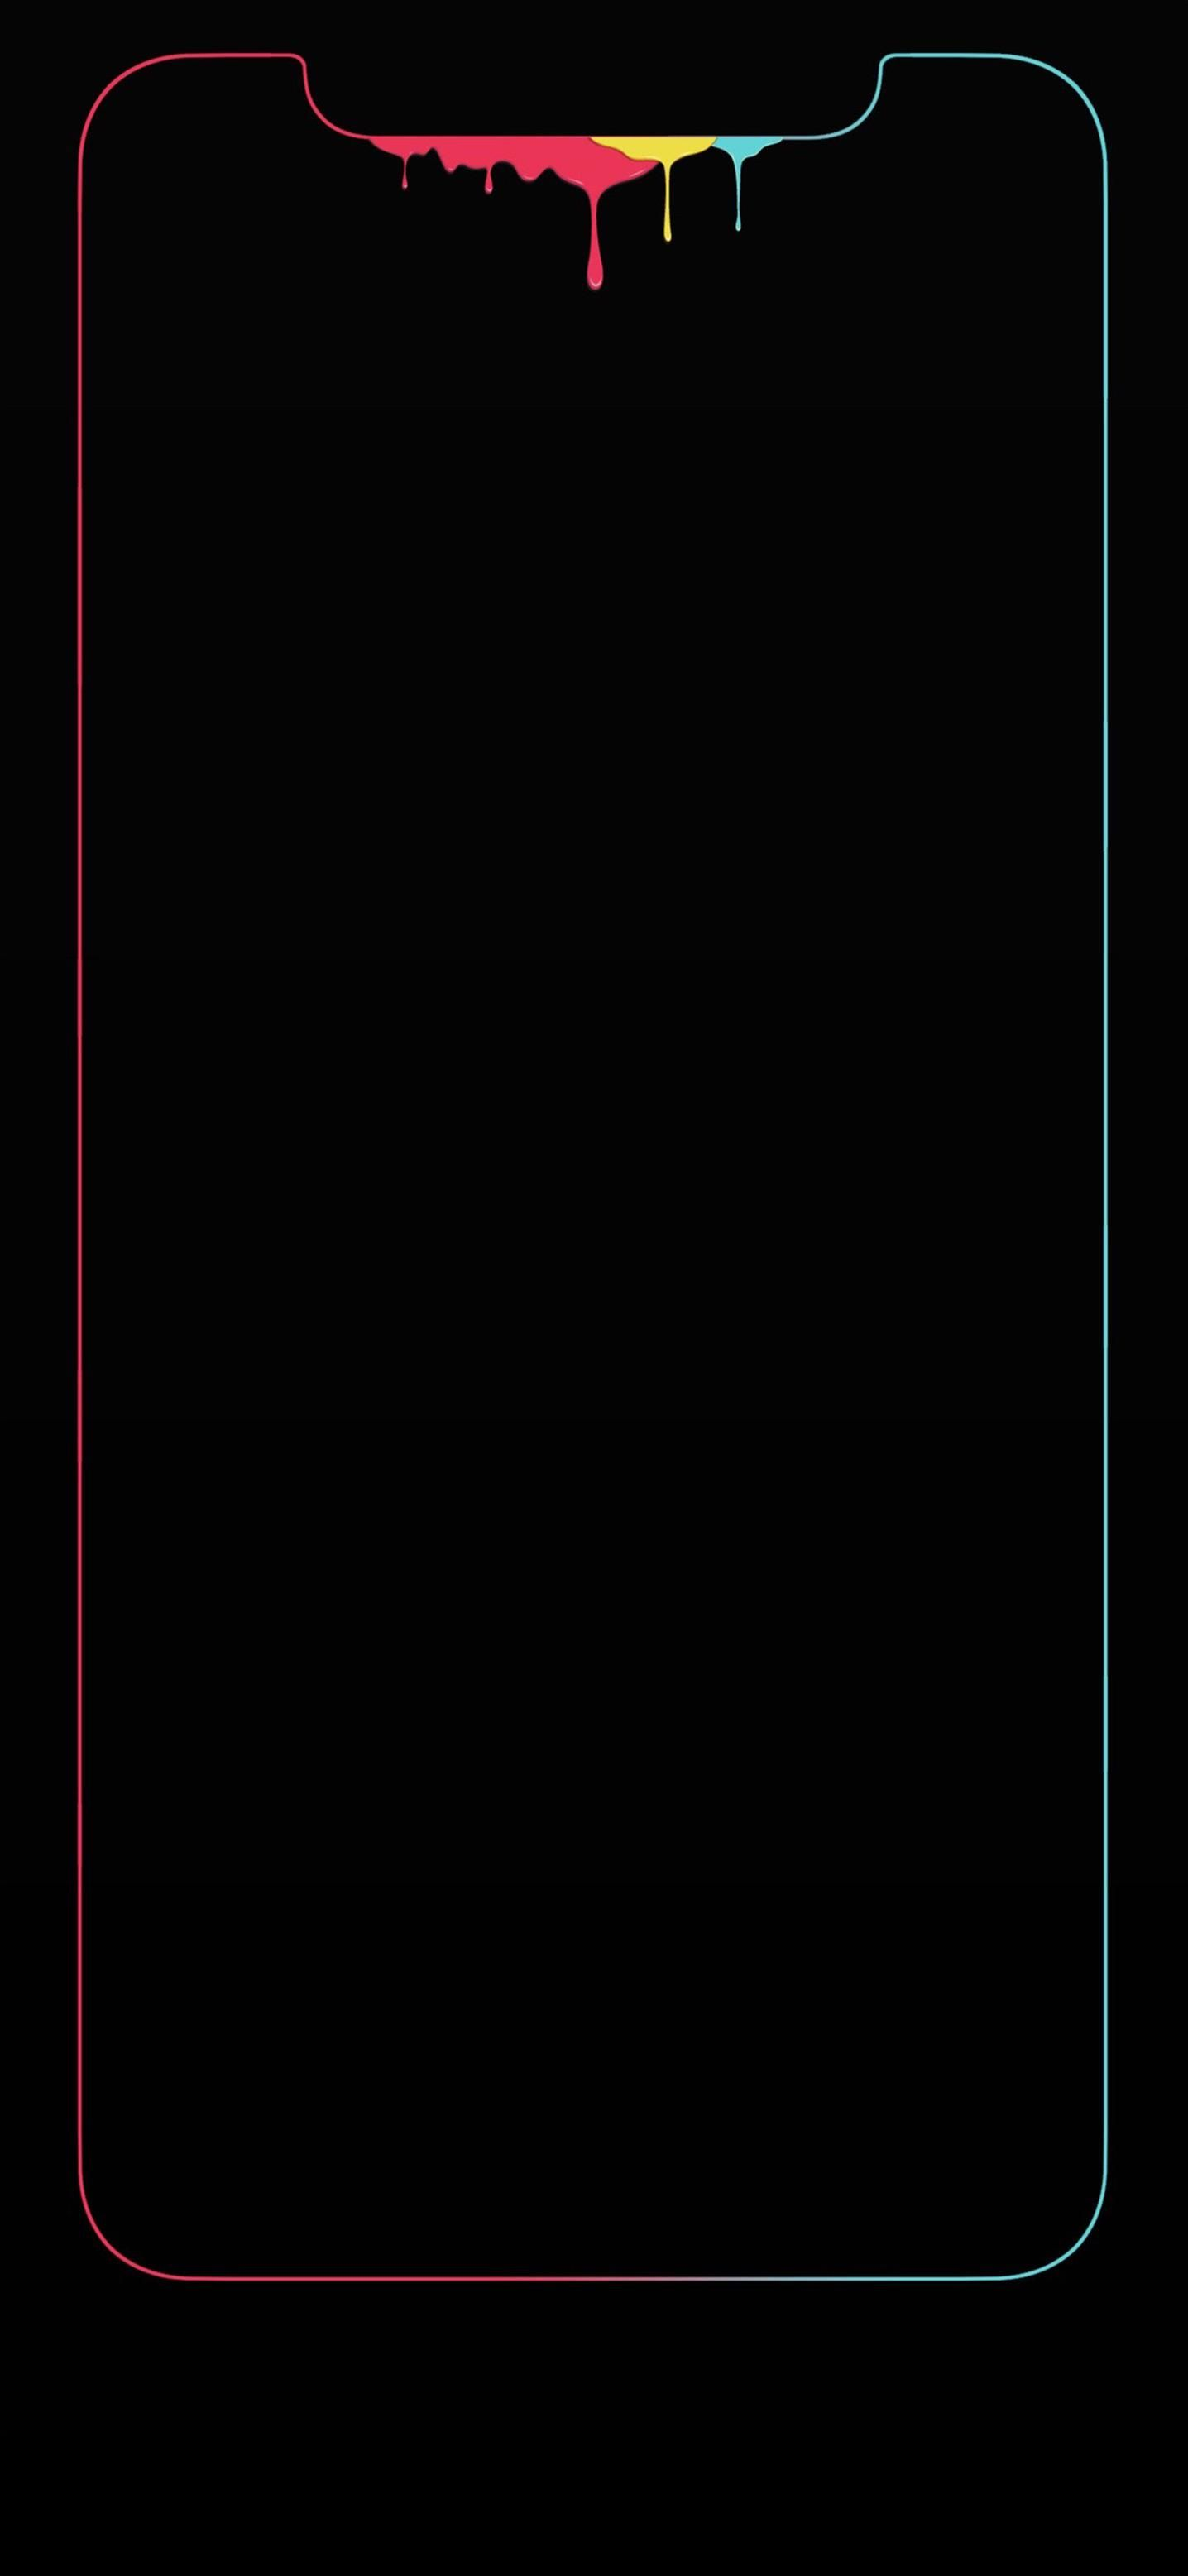 Set As Home Screen Iphone Wallpapers Iphonewallpaper4k Iphonewallpaperfall Iphonewal Dark Wallpaper Iphone Iphone Homescreen Wallpaper Oneplus Wallpapers